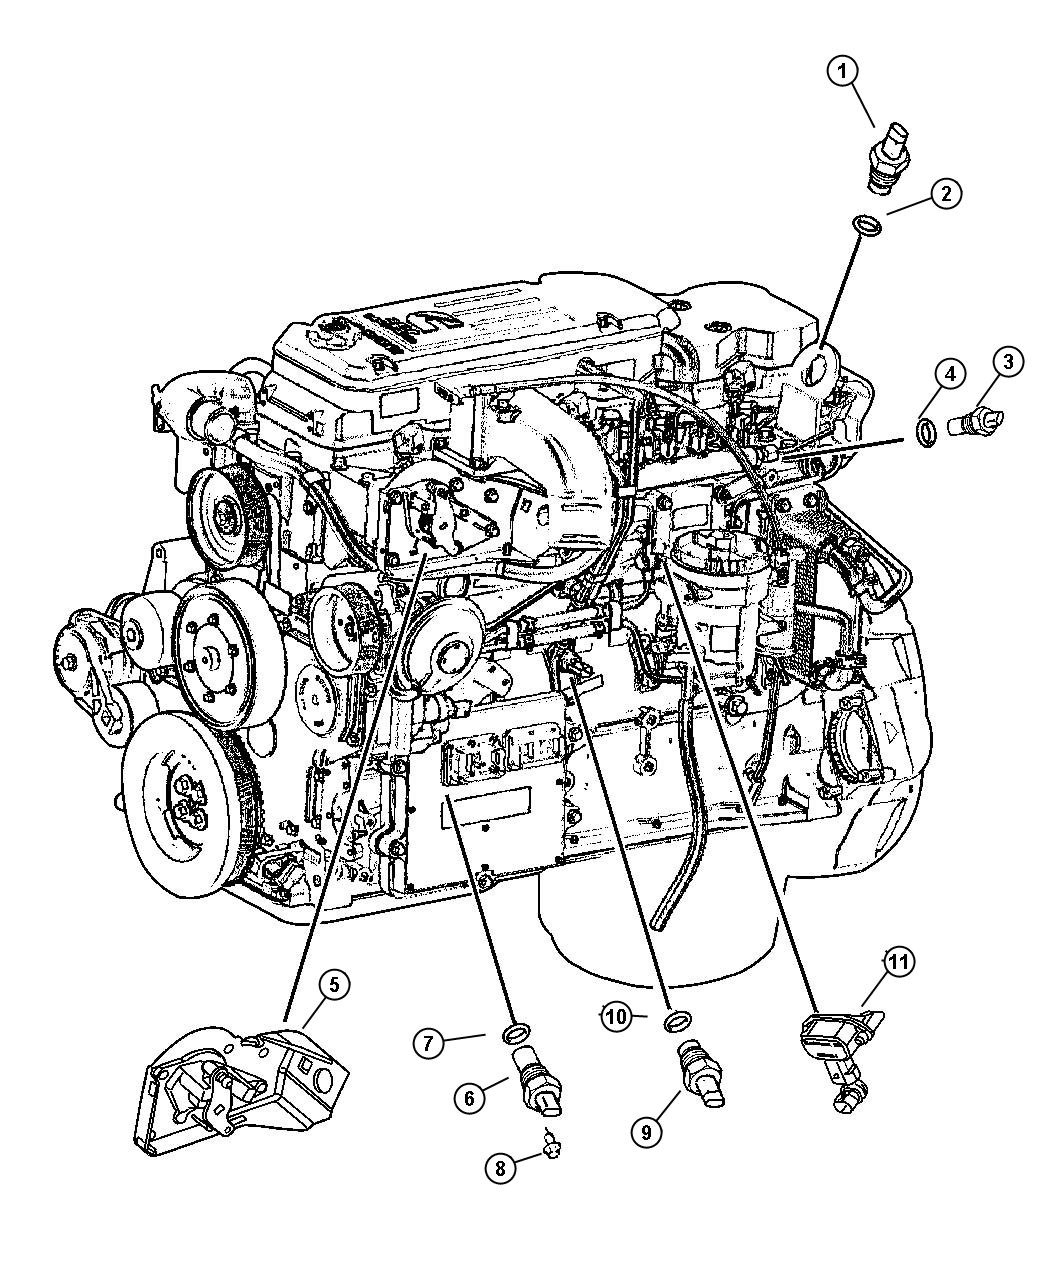 dodge 5 9 engine diagram